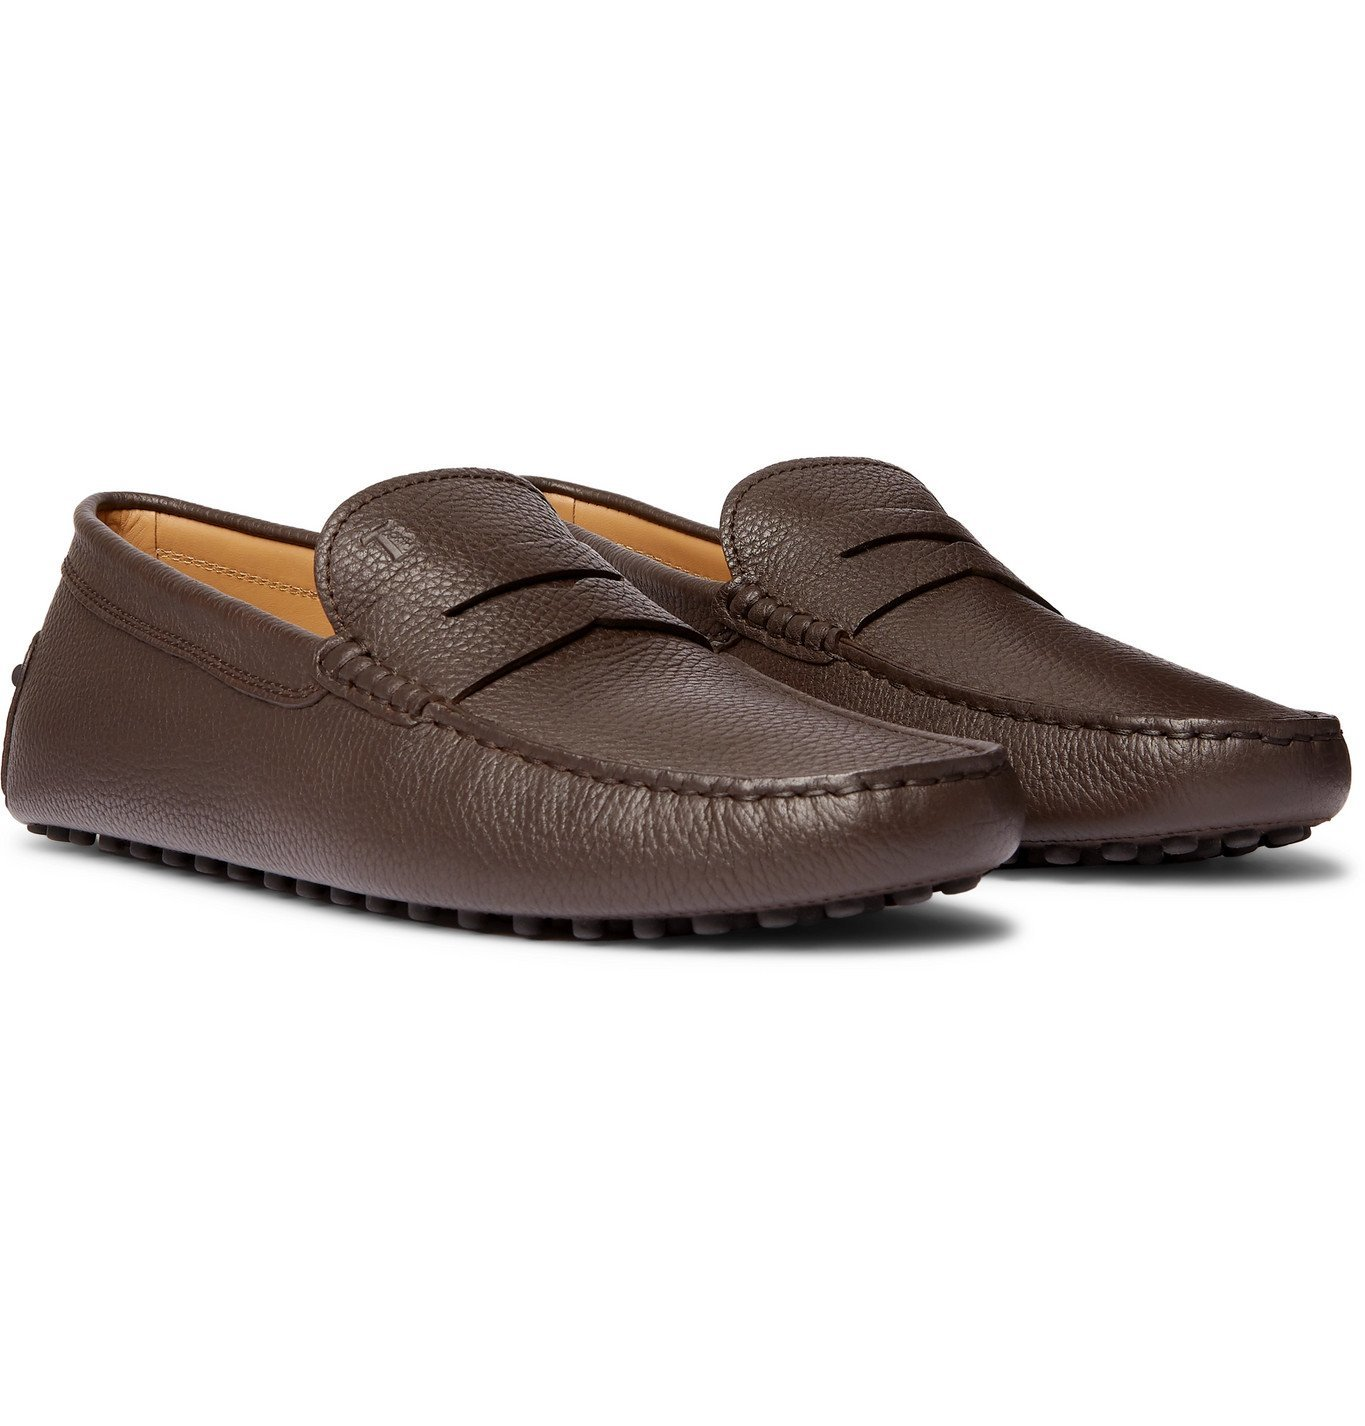 Tod's - Gommino Full-Grain Leather Penny Loafers - Brown